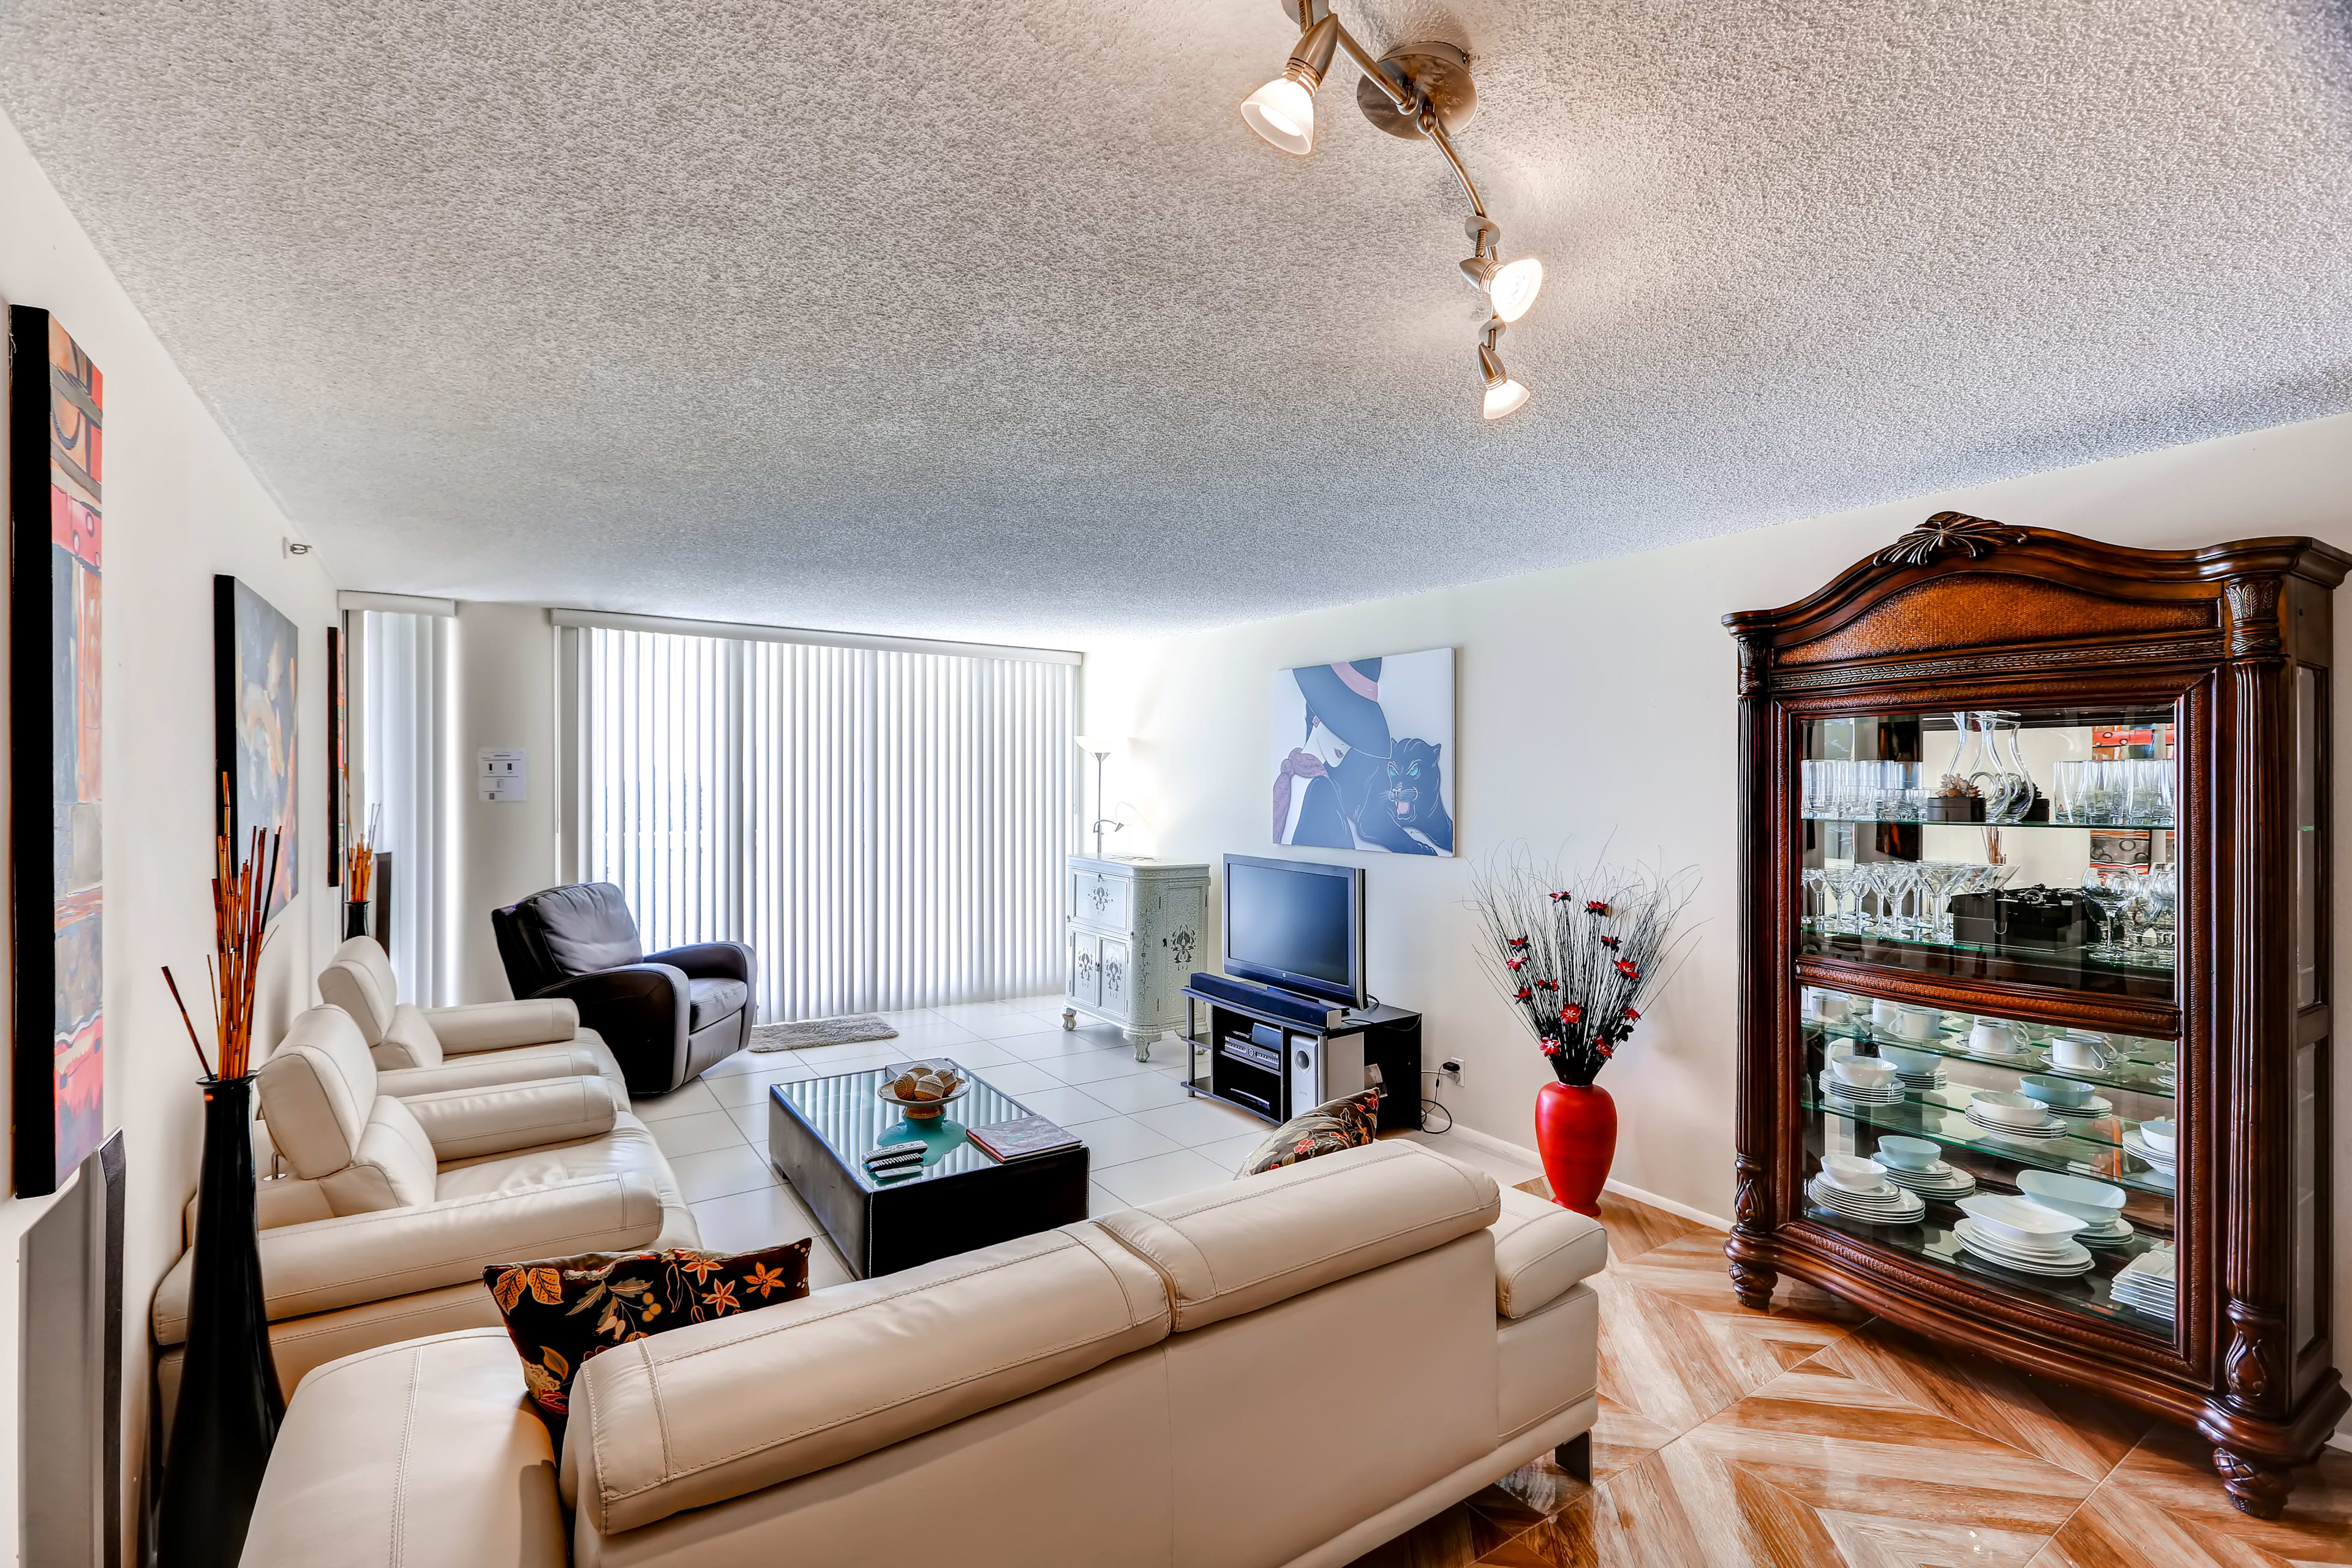 The open living room has plenty of room for your whole group.